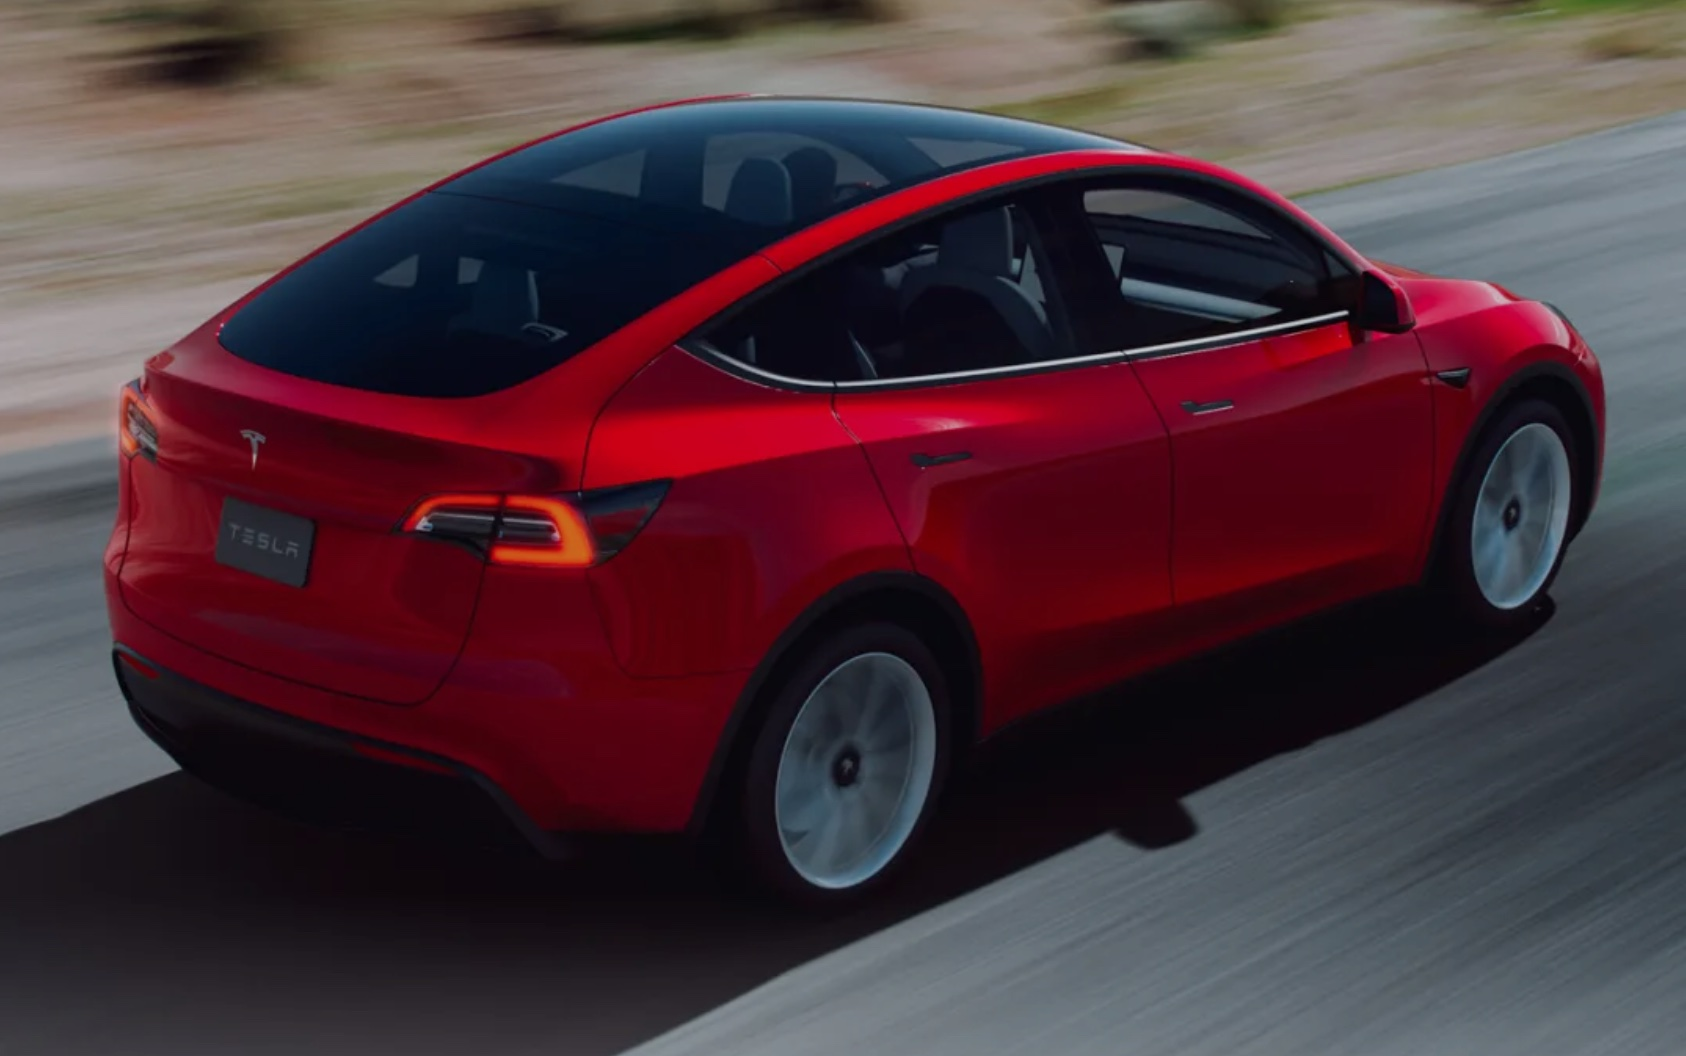 Model Y price cut in China seen as major impact on traditional luxury car makers-CnTechPost